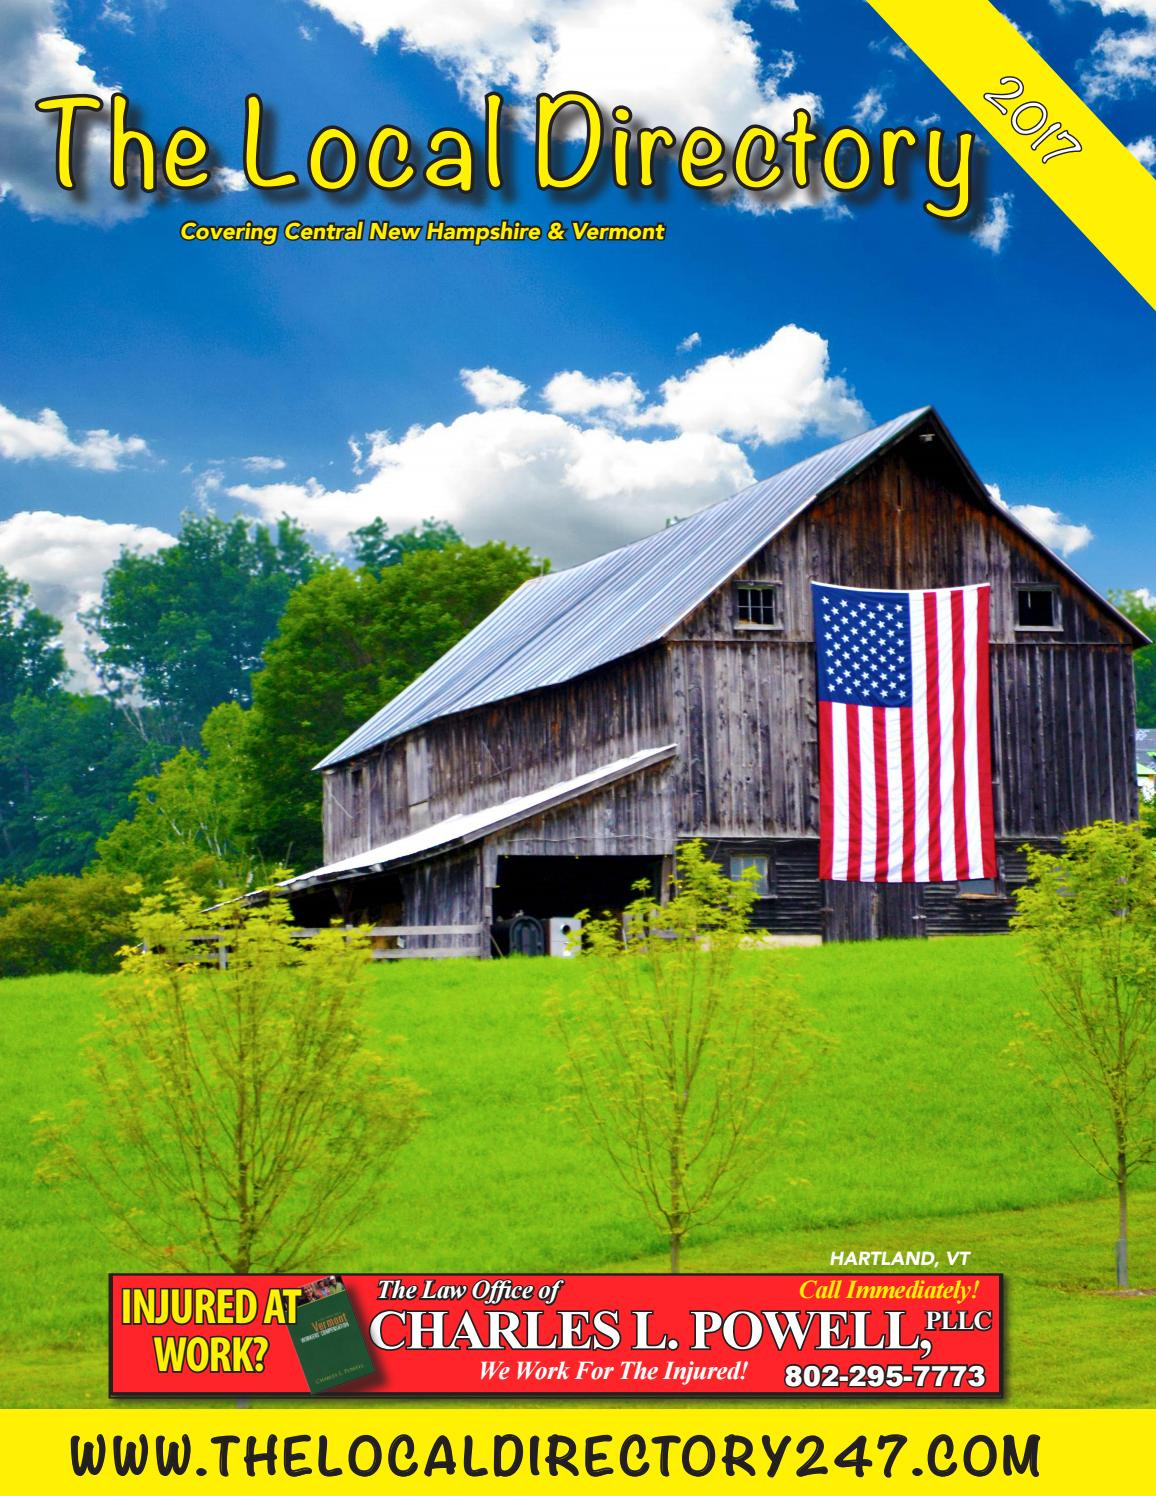 Vermont Department Of Housing and Community Development Collection the Local Directory 2017 Yellow Pages by Mason Marketing